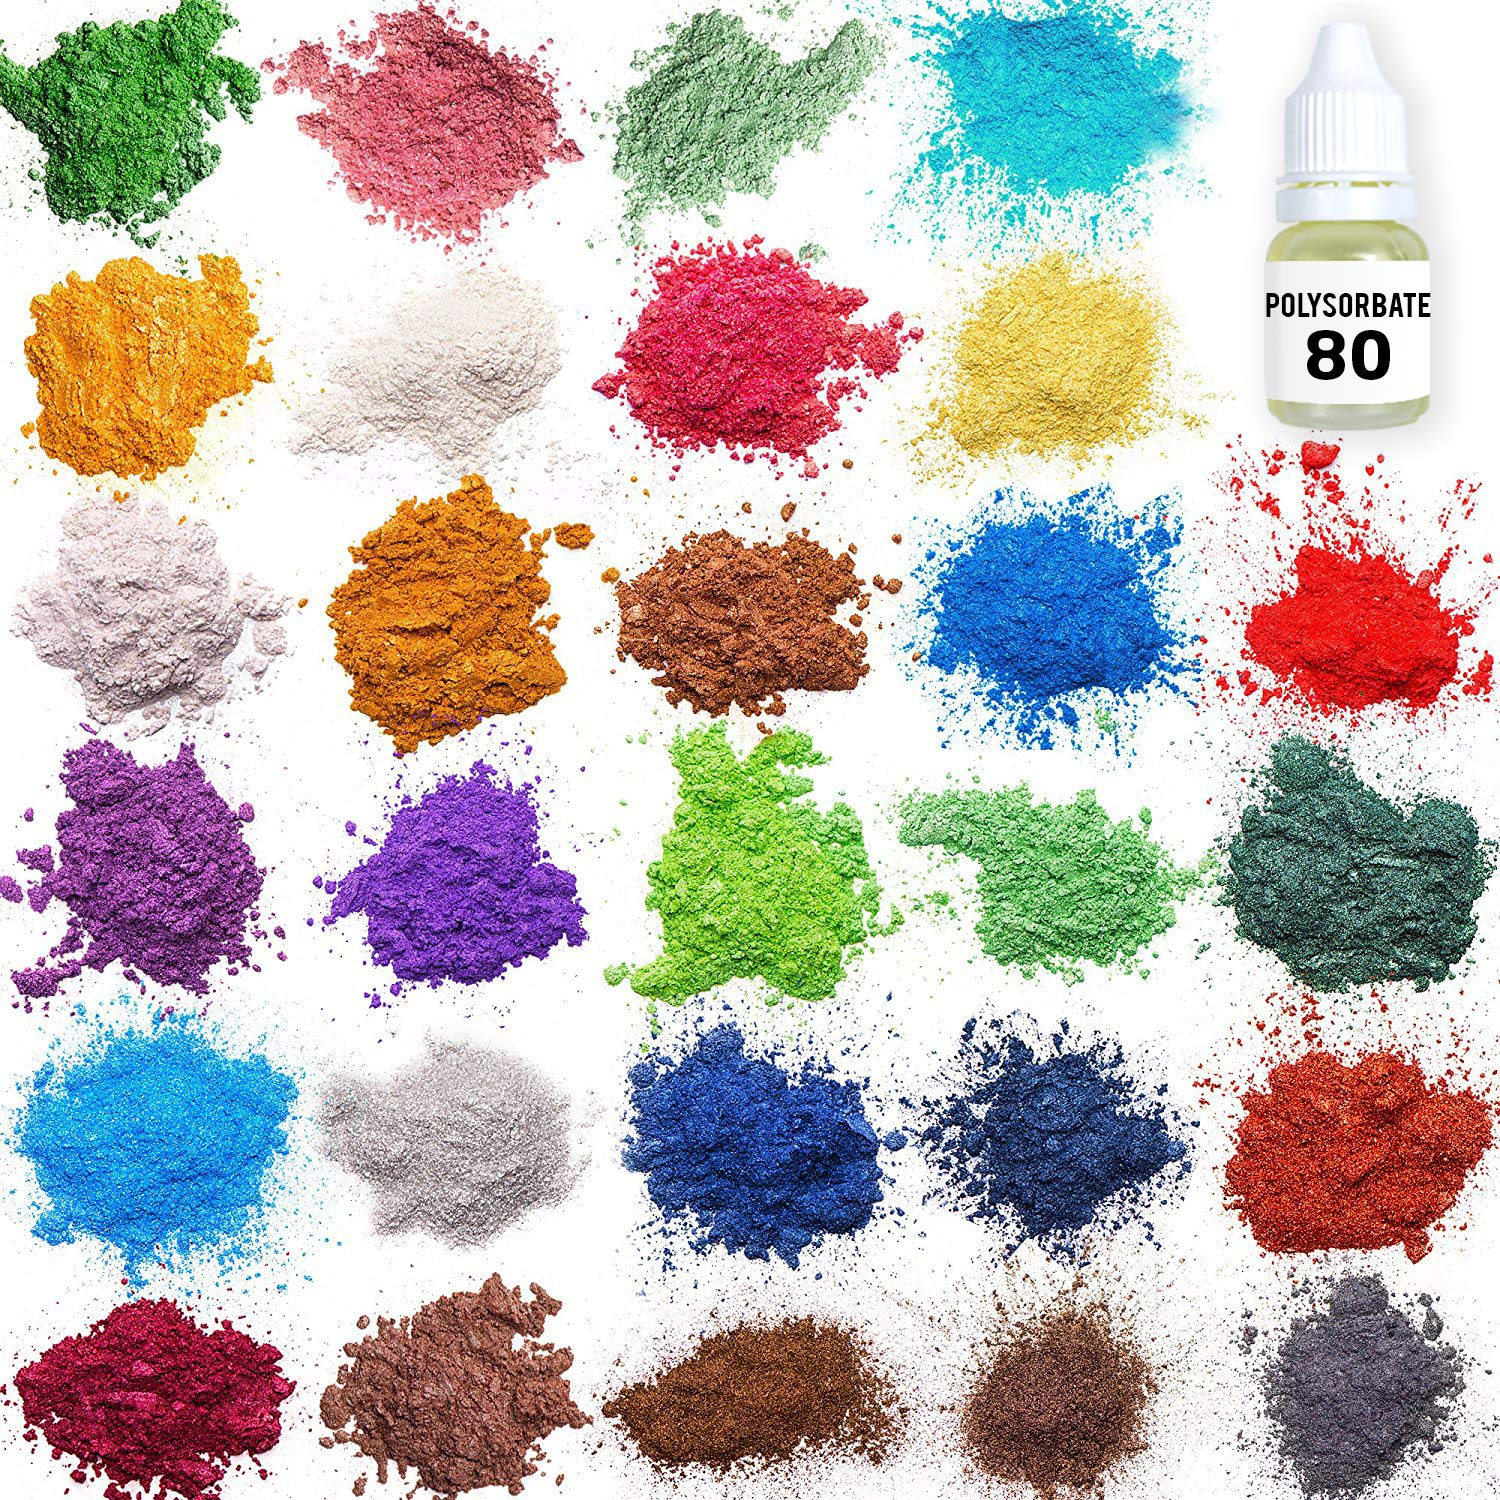 Mica Powder – Soap Making Kit – Soap Making dye – 28 Coloring - Powdered Pigments Set – Hand Soap Making Supplies - Resin Dye – Organic Mica Powder - Bath Bomb Dye Colorant by Mica Powder